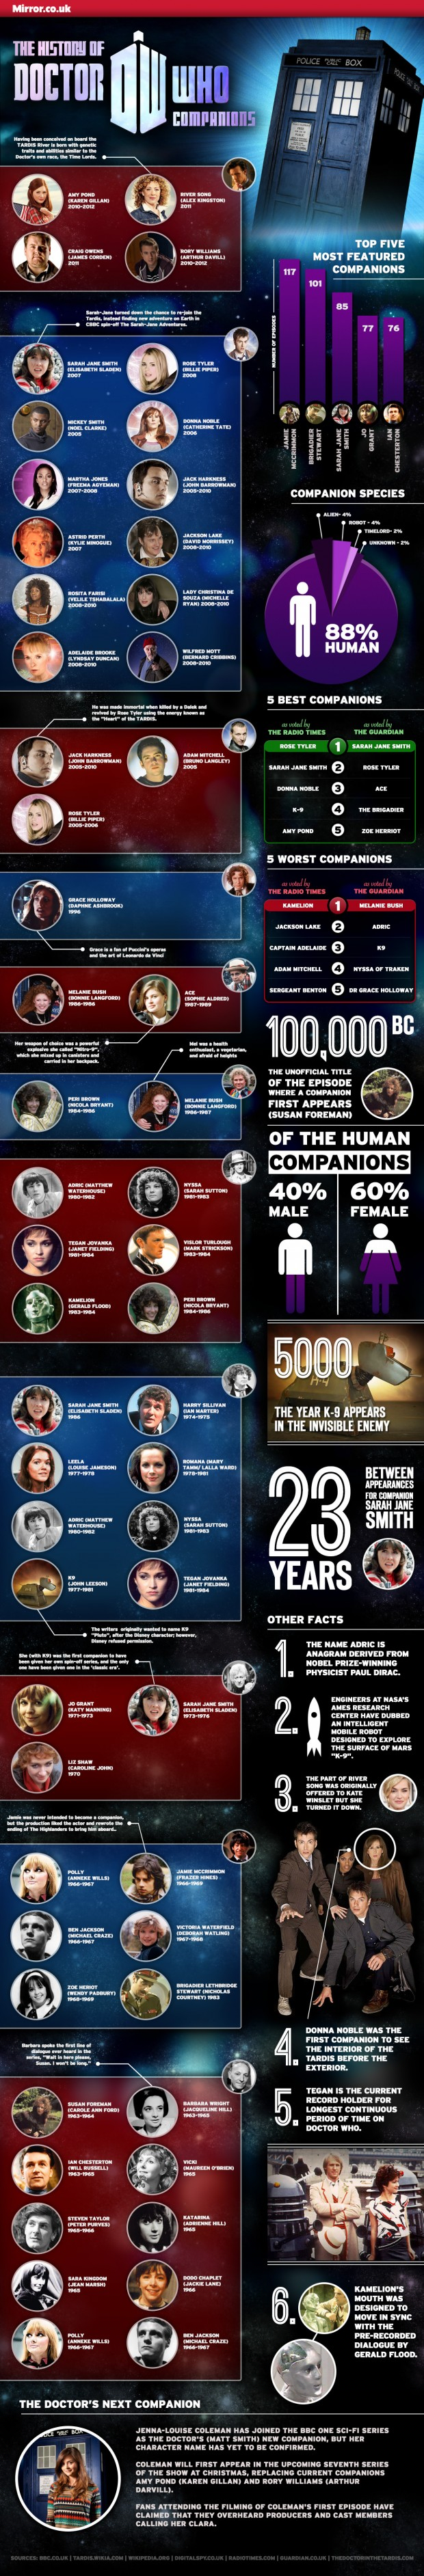 Ultimate Doctor Who Companion Infographic